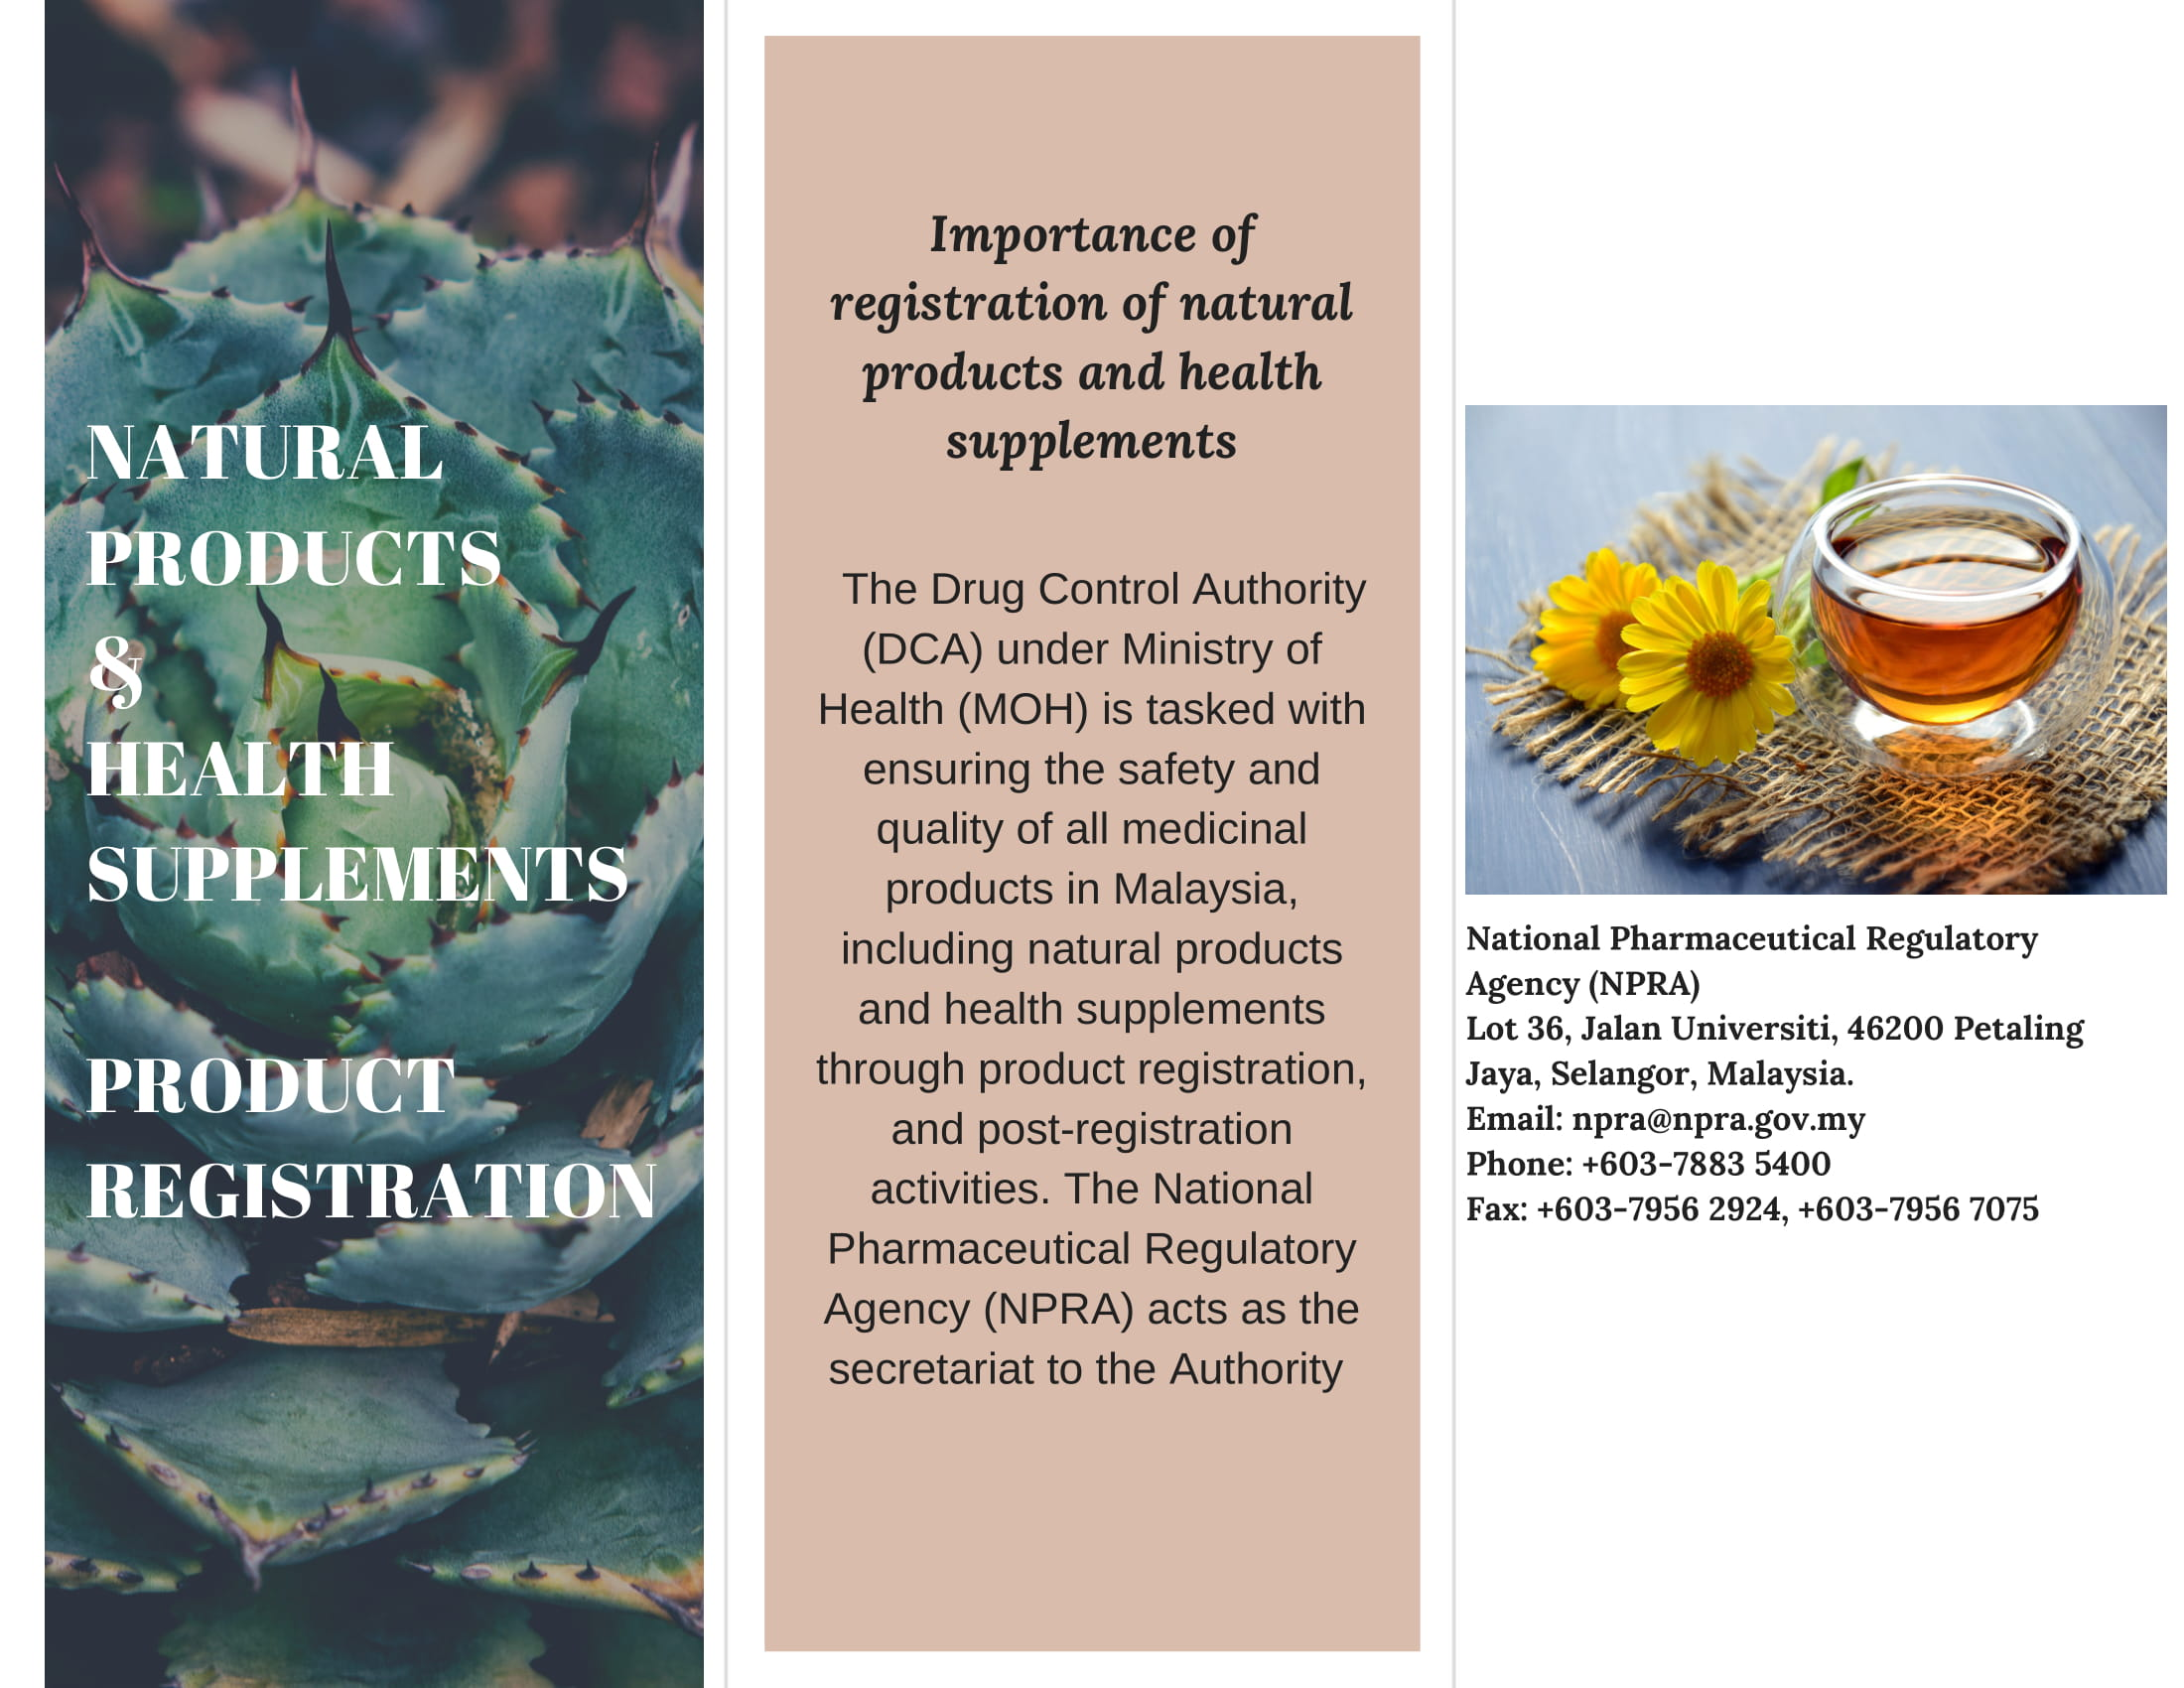 NATURAL PRODUCTS & HEALTH SUPPLEMENTS REGISTRATION